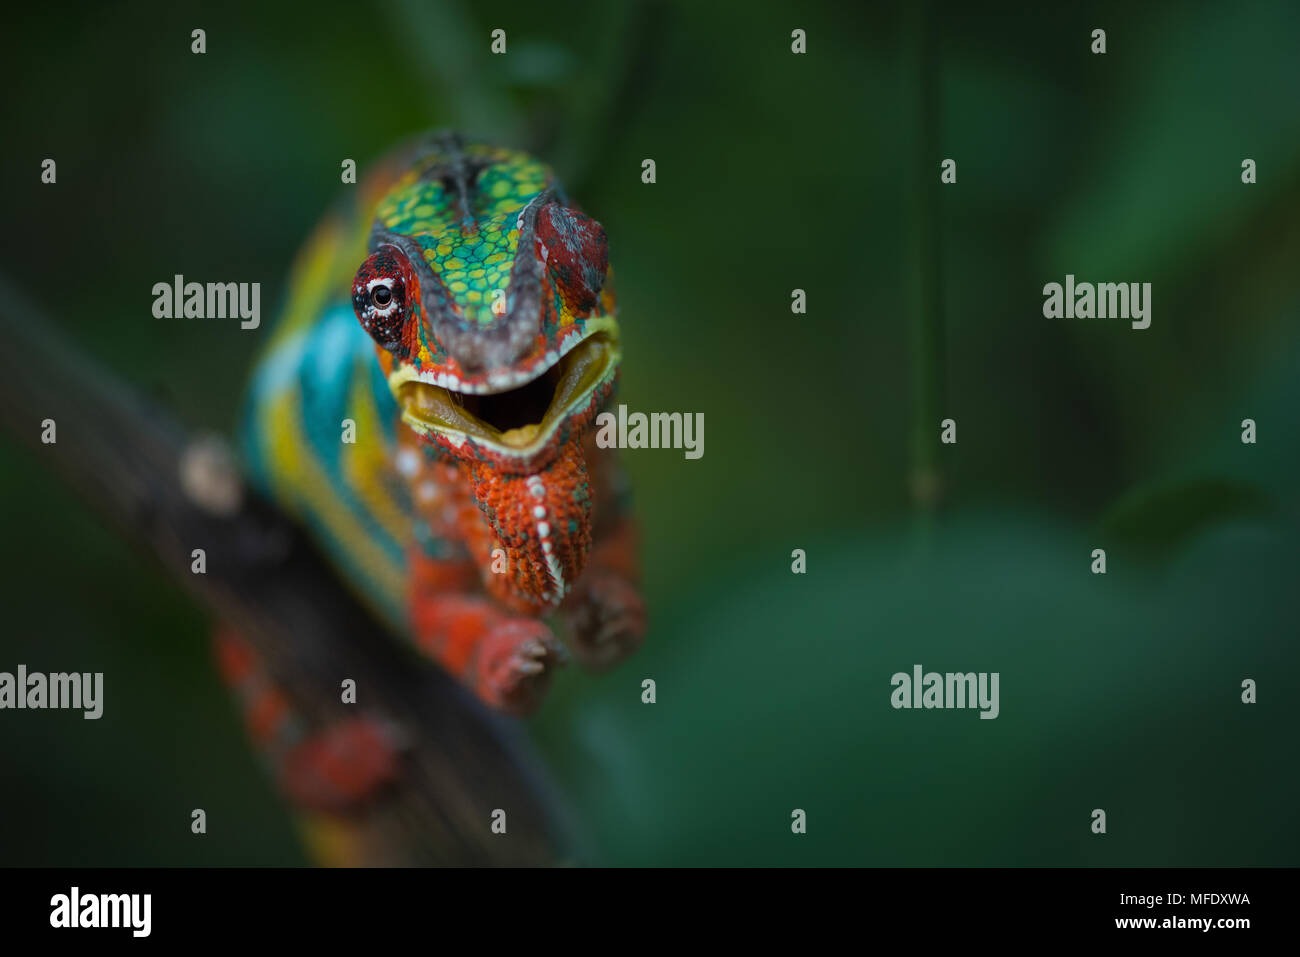 Panther chameleon with bright colors / Furcifer pardalis / angry chameleon / hissing chameleon / Madagascar wildlife - Stock Image